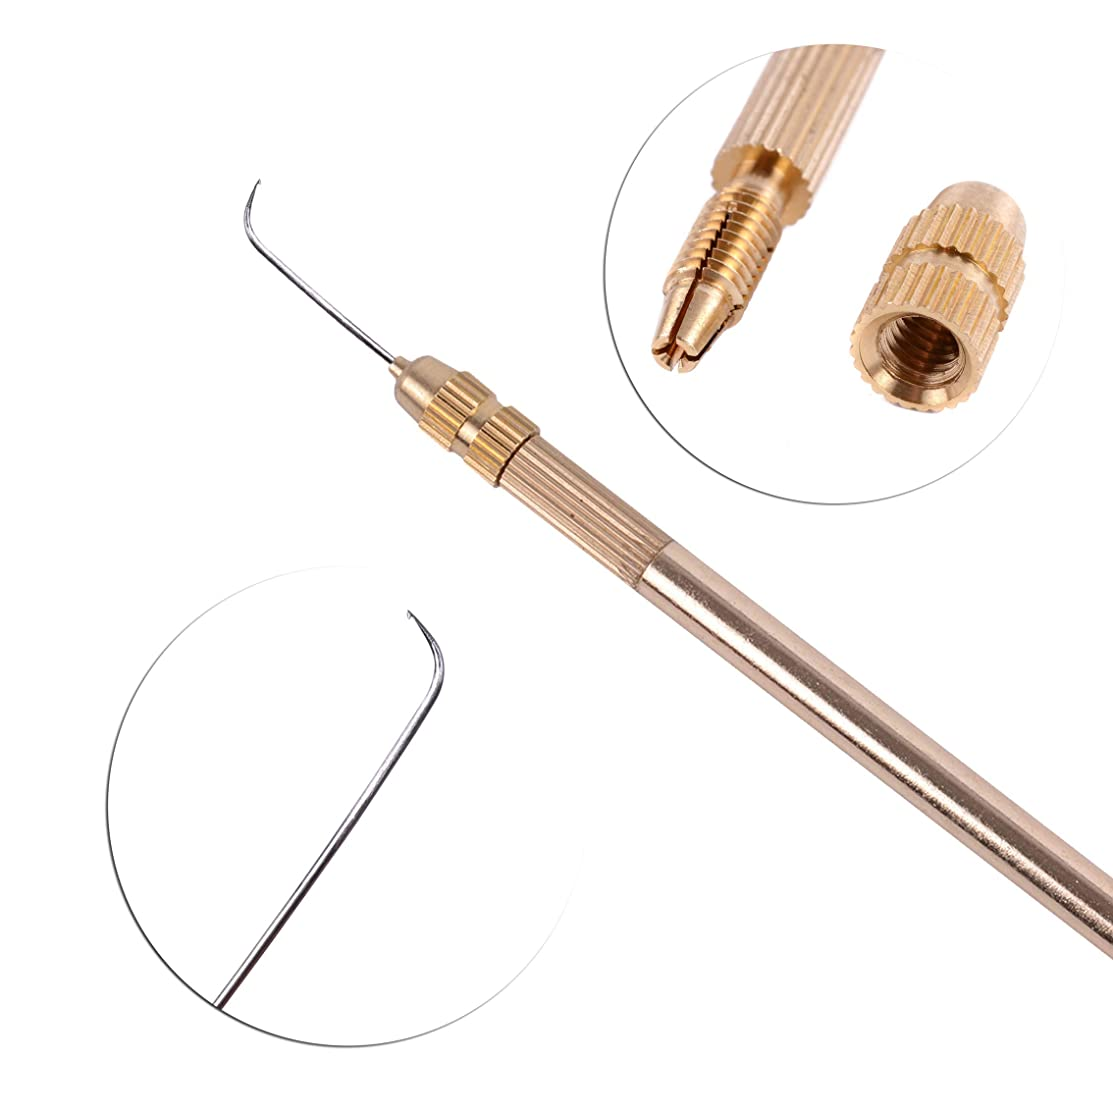 German Needle+Holder for Lace Wig Accessories Weaving Ventilating Needles and Holder